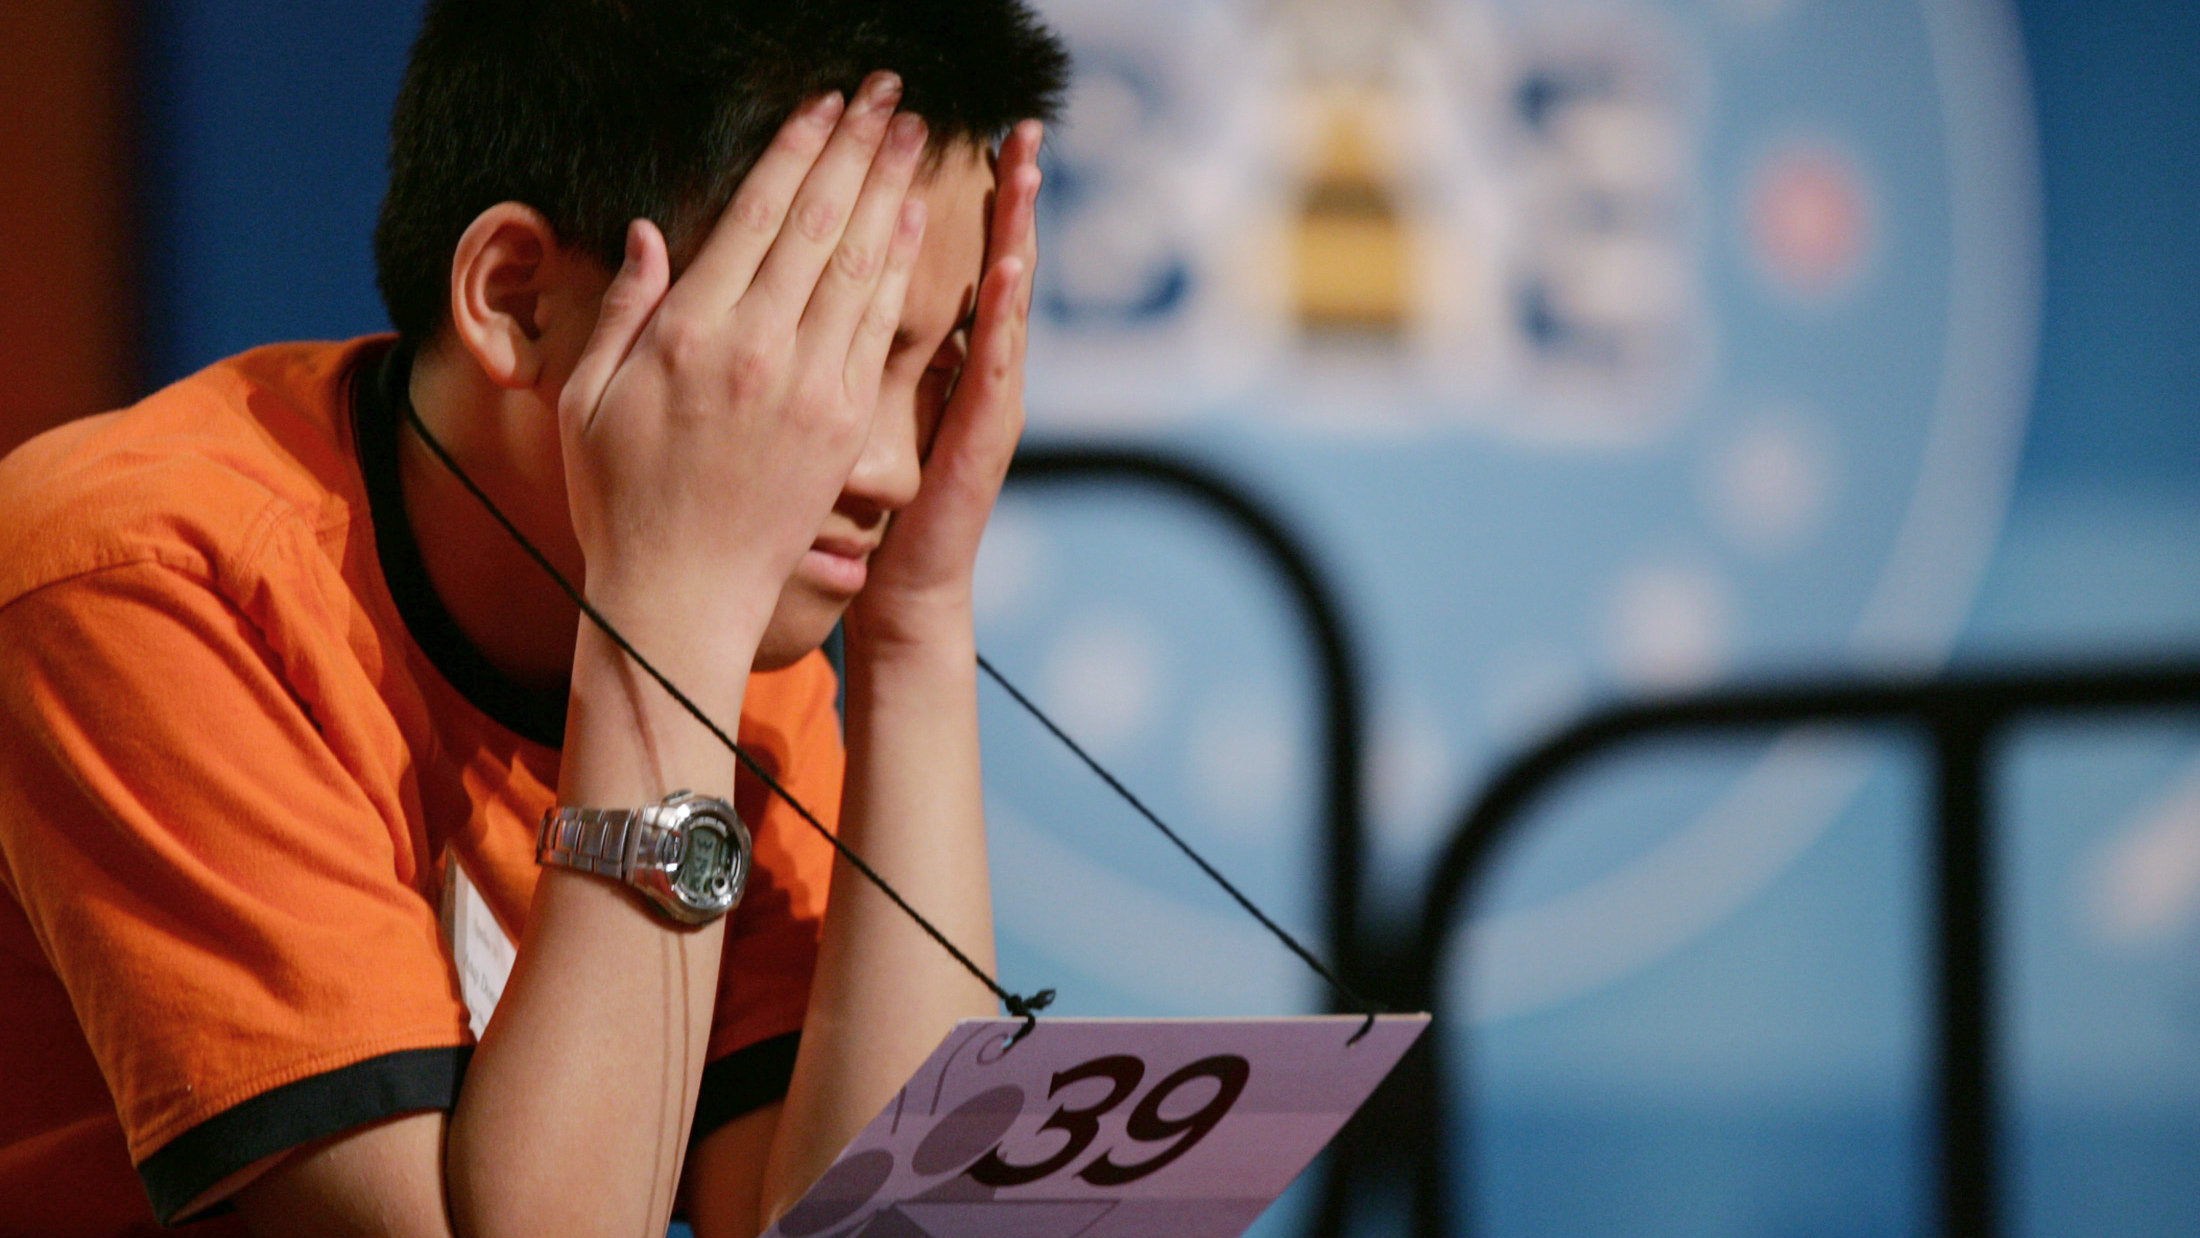 Scripps National Spelling Bee: Competitor Anqi Dong, of Saskatoon, Saskatchewan,Canada, waits for his turn during the quarter-finals of the 2008 Scripps National Spelling Bee in Washington May 29, 2008. REUTERS/Molly Riley (UNITED STATES)